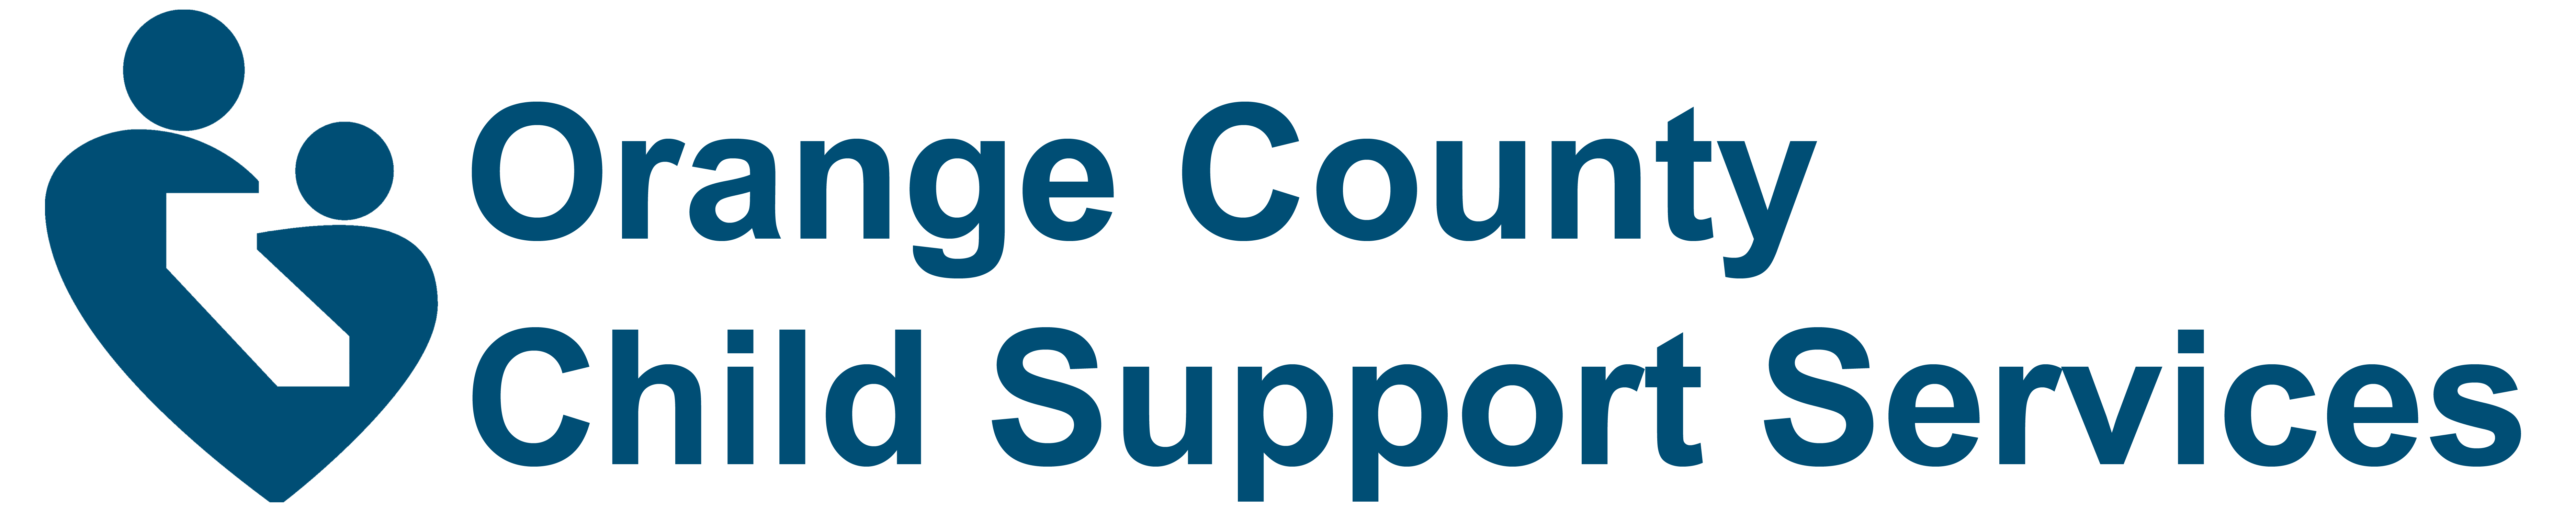 Orange County Child Support Services Logo -- Home